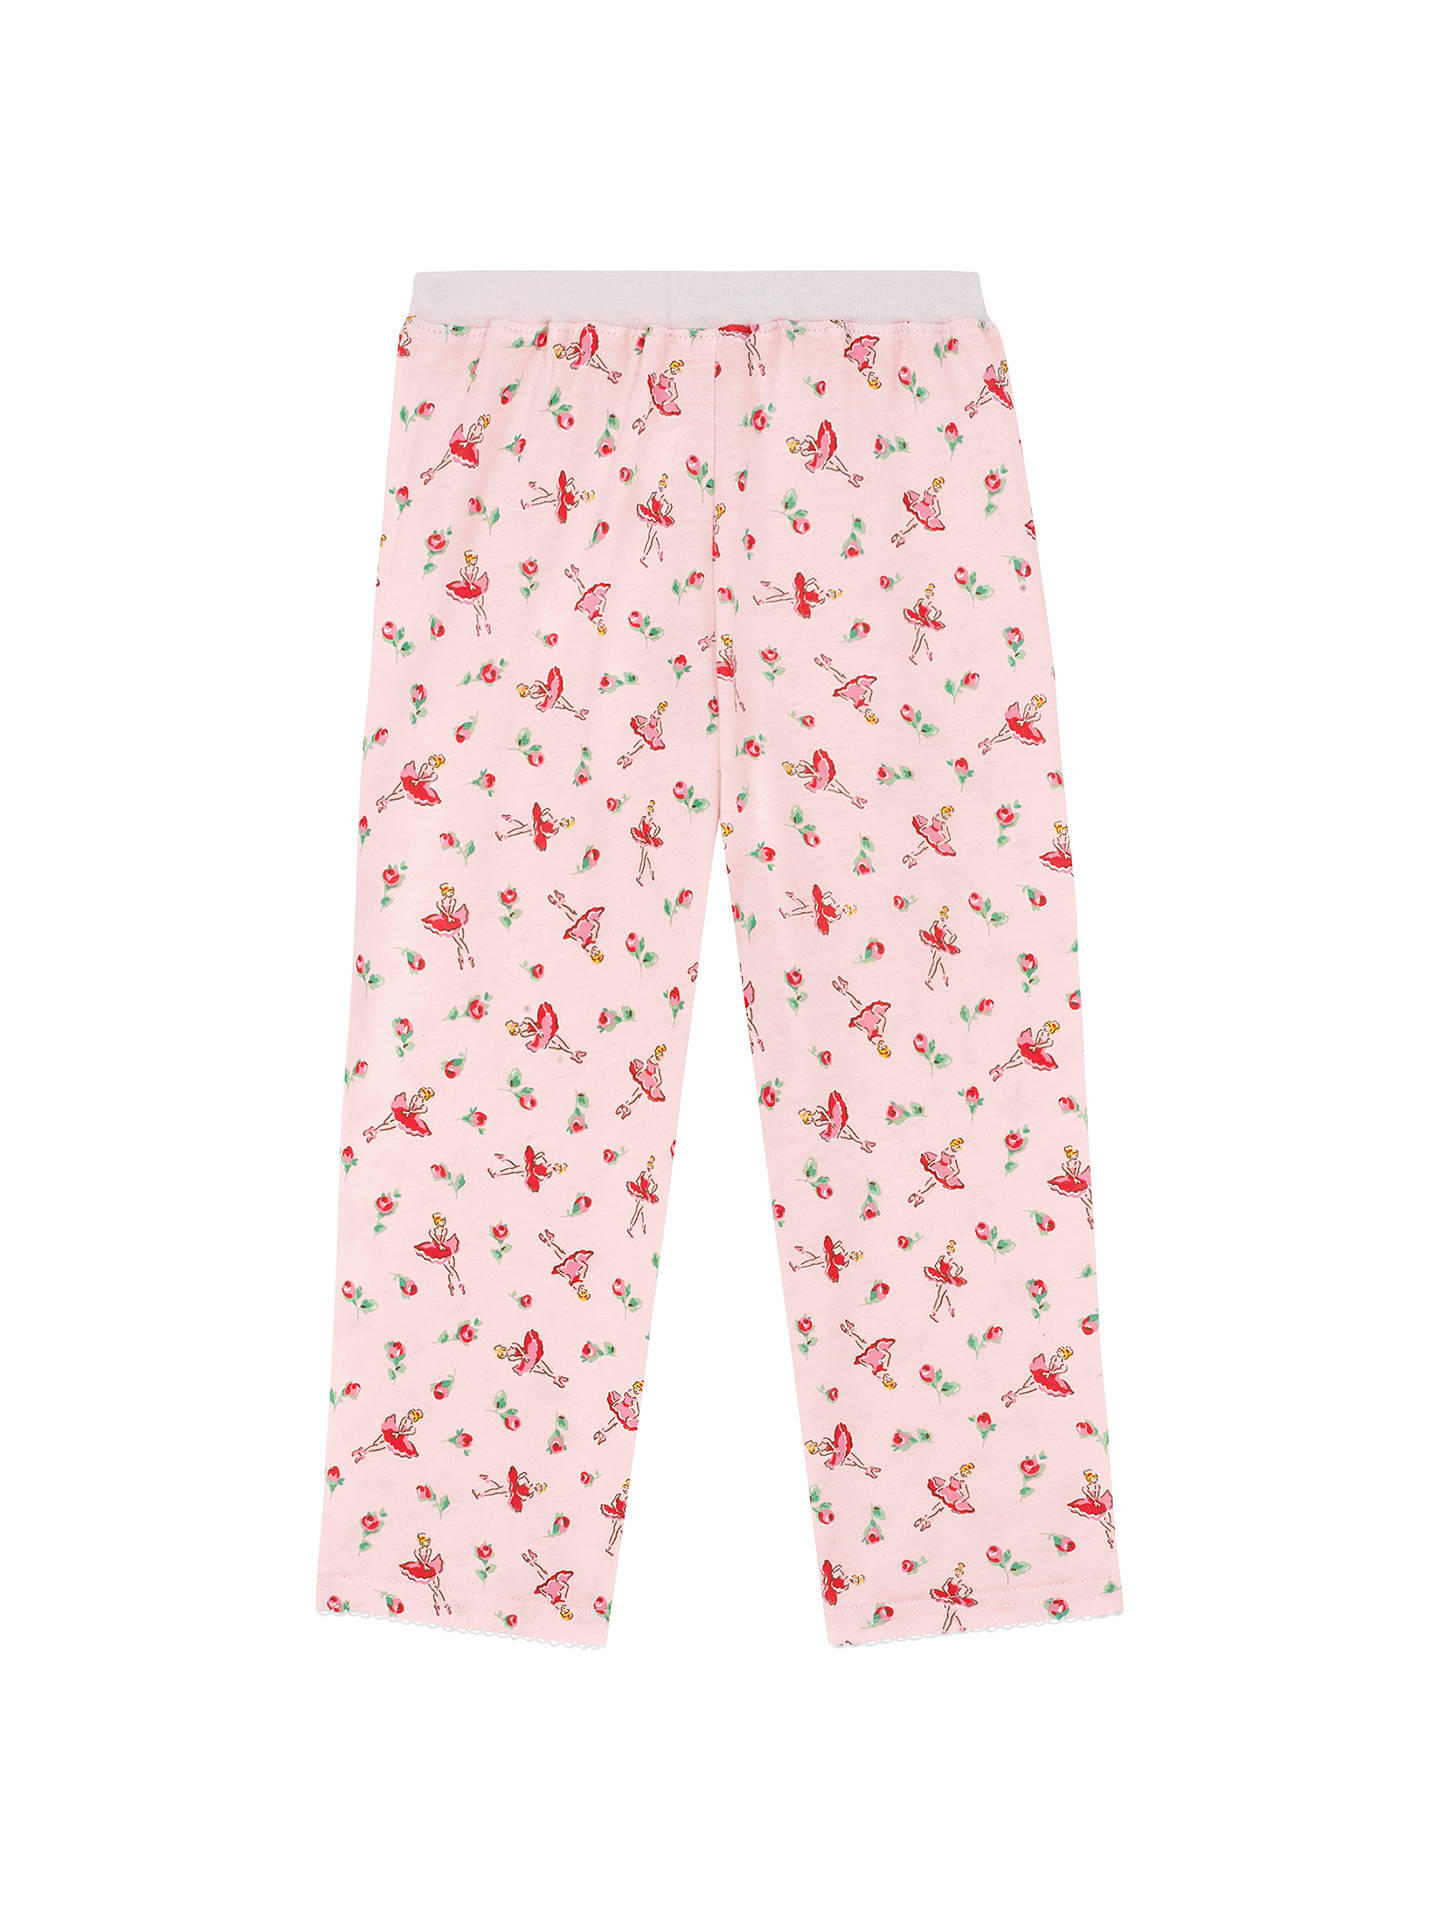 Buy Cath Kids Girls' Ballerina Rose Pyjamas, Pink, 2-3 years Online at johnlewis.com